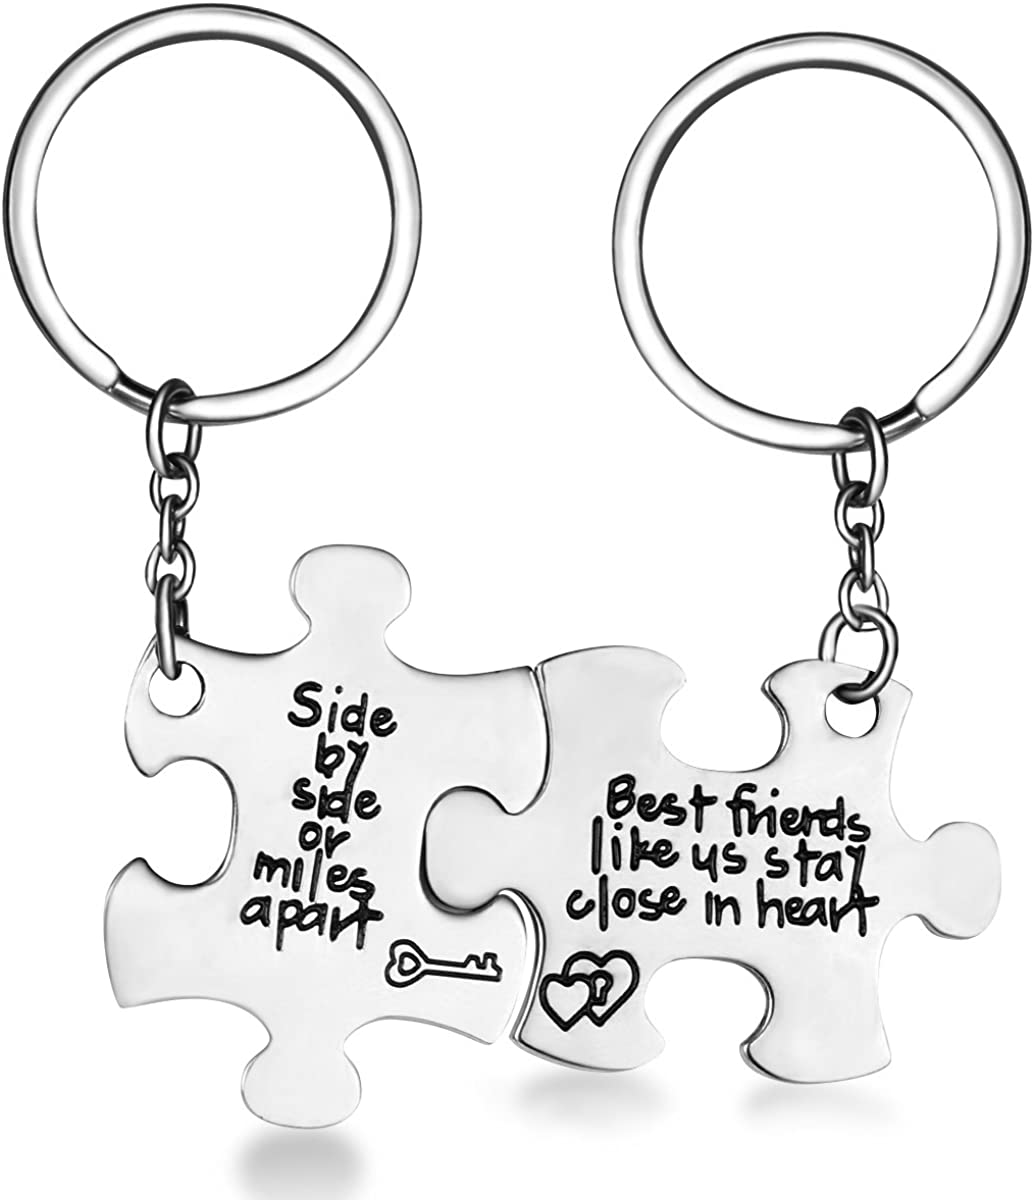 CJ&M Stainless Steel Side Side Miles Apart Best Friends Necklaces Set/Keychain Set,Friendship Gifts Jewelry